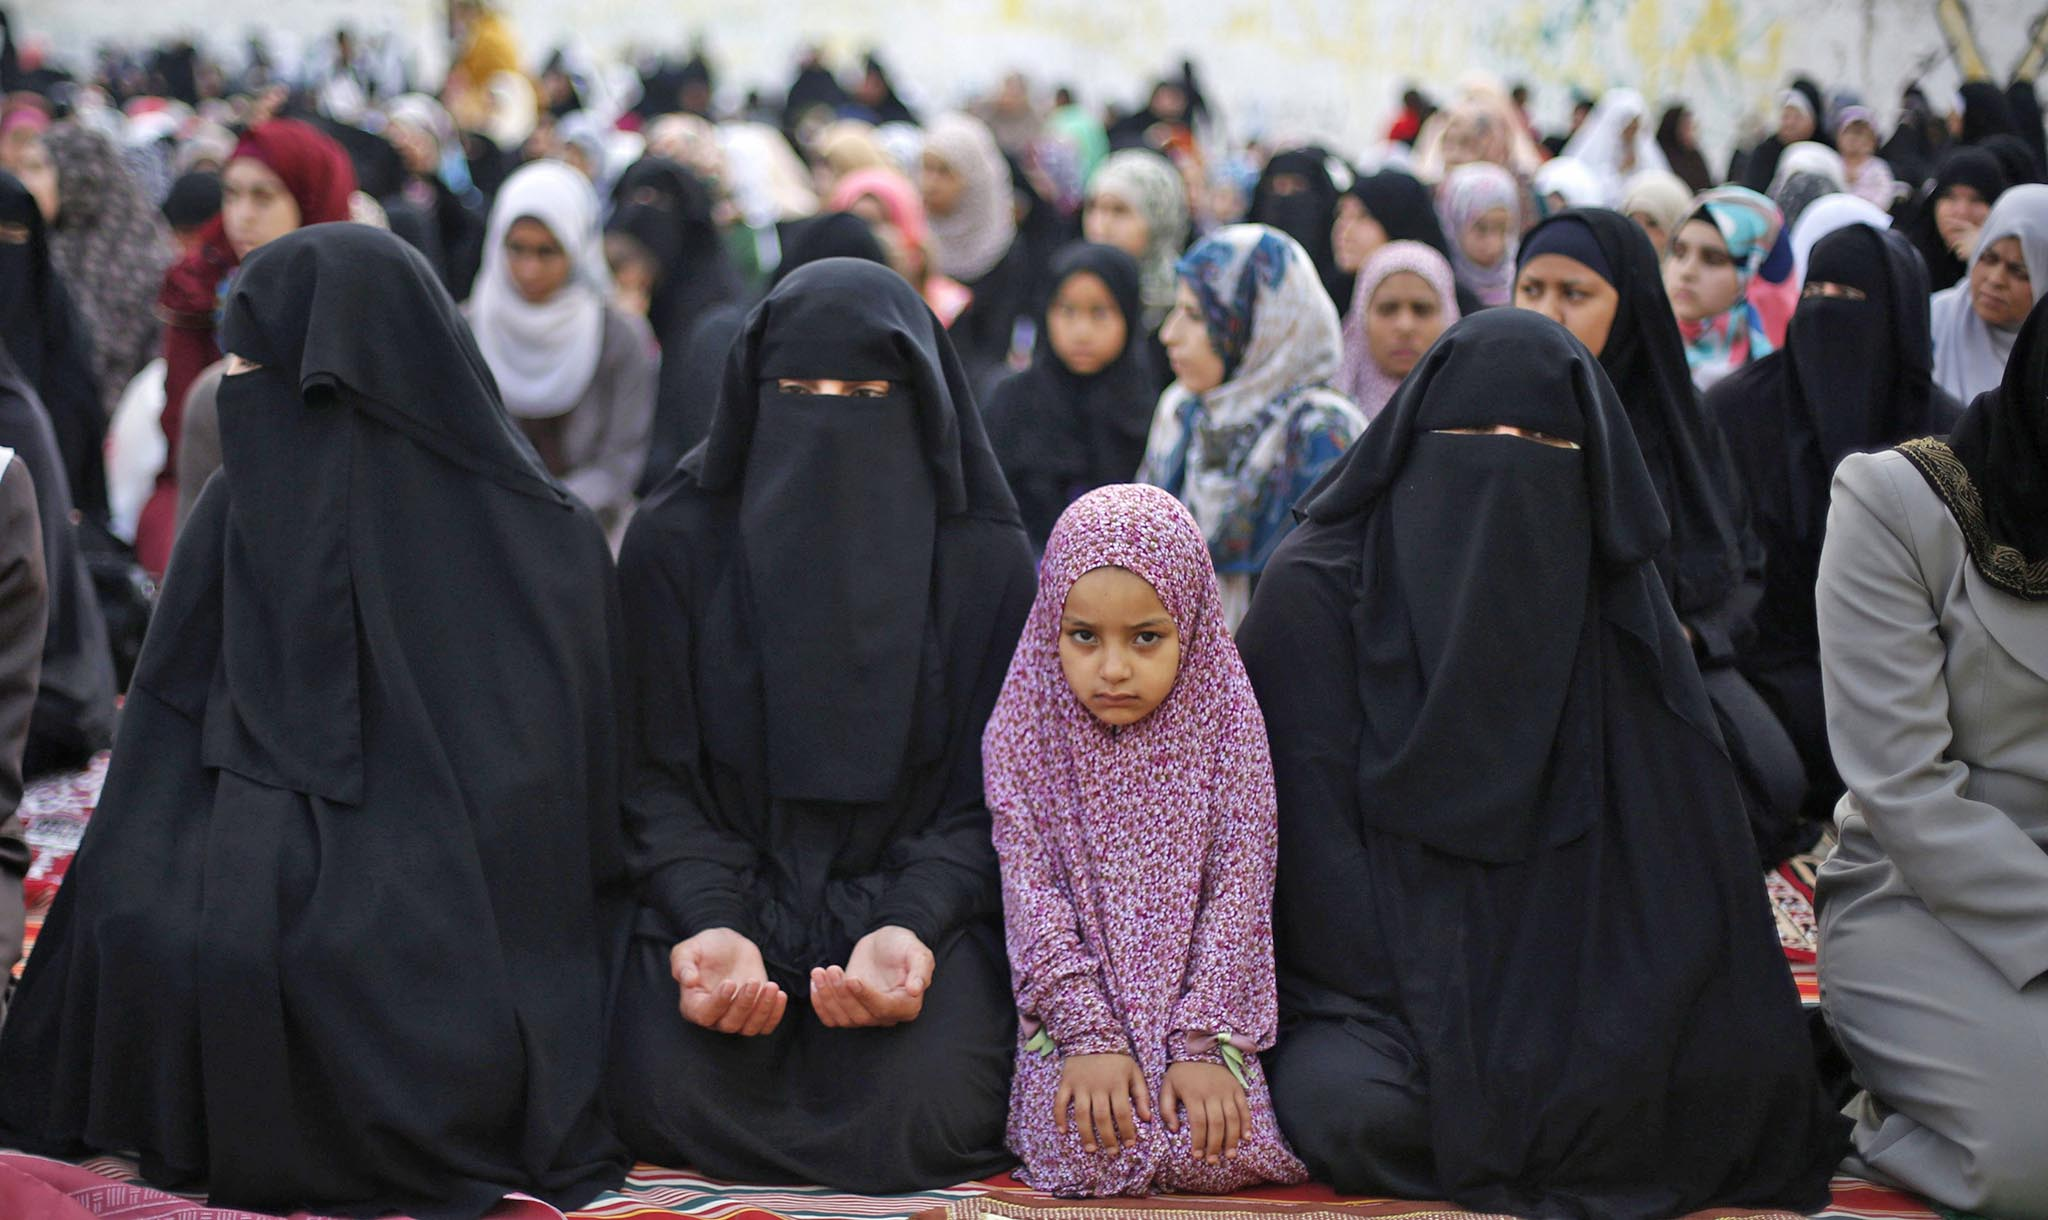 Palestinian refugees perform Eid al-Fitr prayers at Al-Baqaa Palestinian refugee camp, near Amman